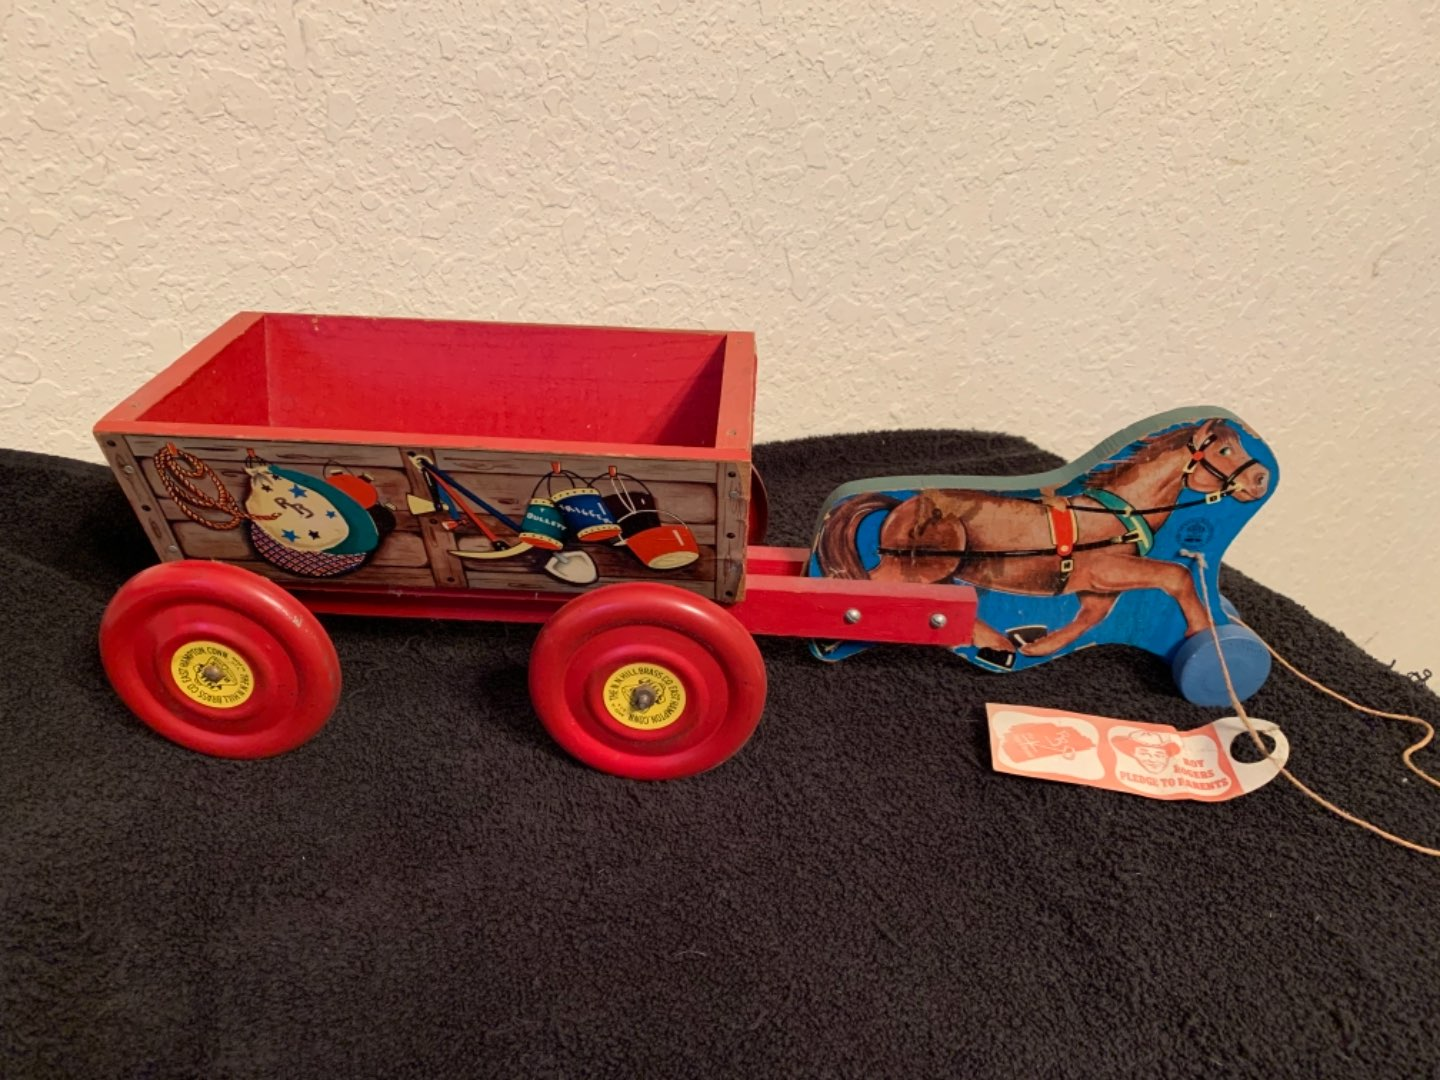 Lot # 103 Incredible Condition Vintage Roy Rogers Pull Toy. All Original! See Below